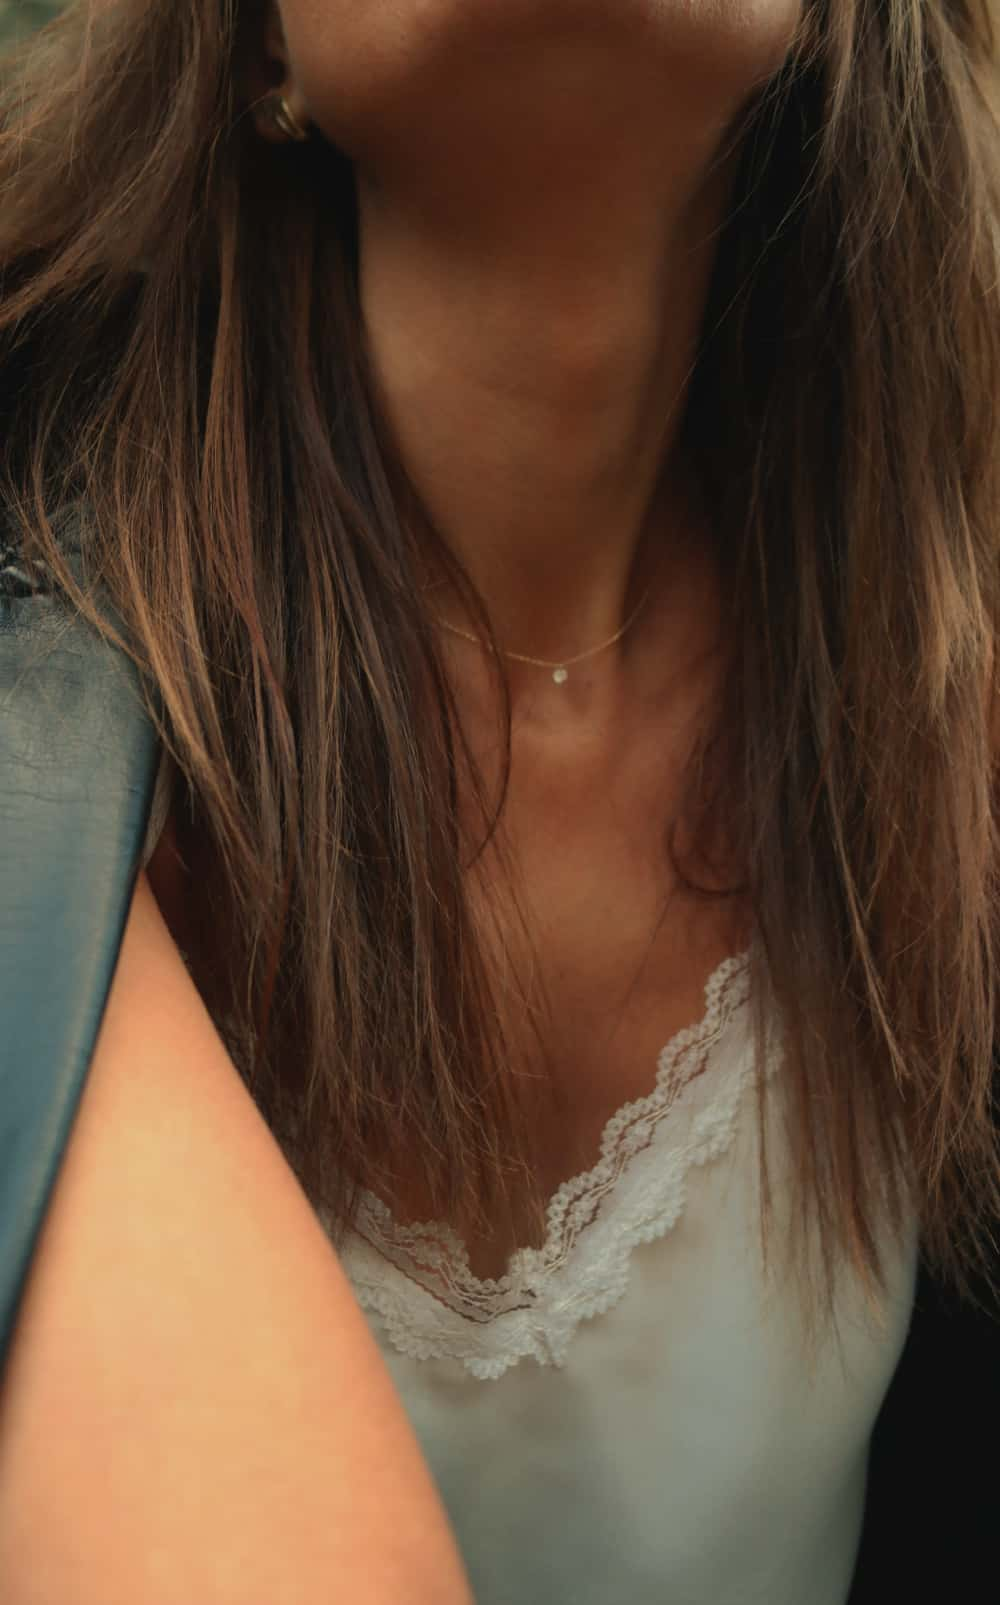 nude diamond necklace 2 Nude Diamond & Why I Fell In Love